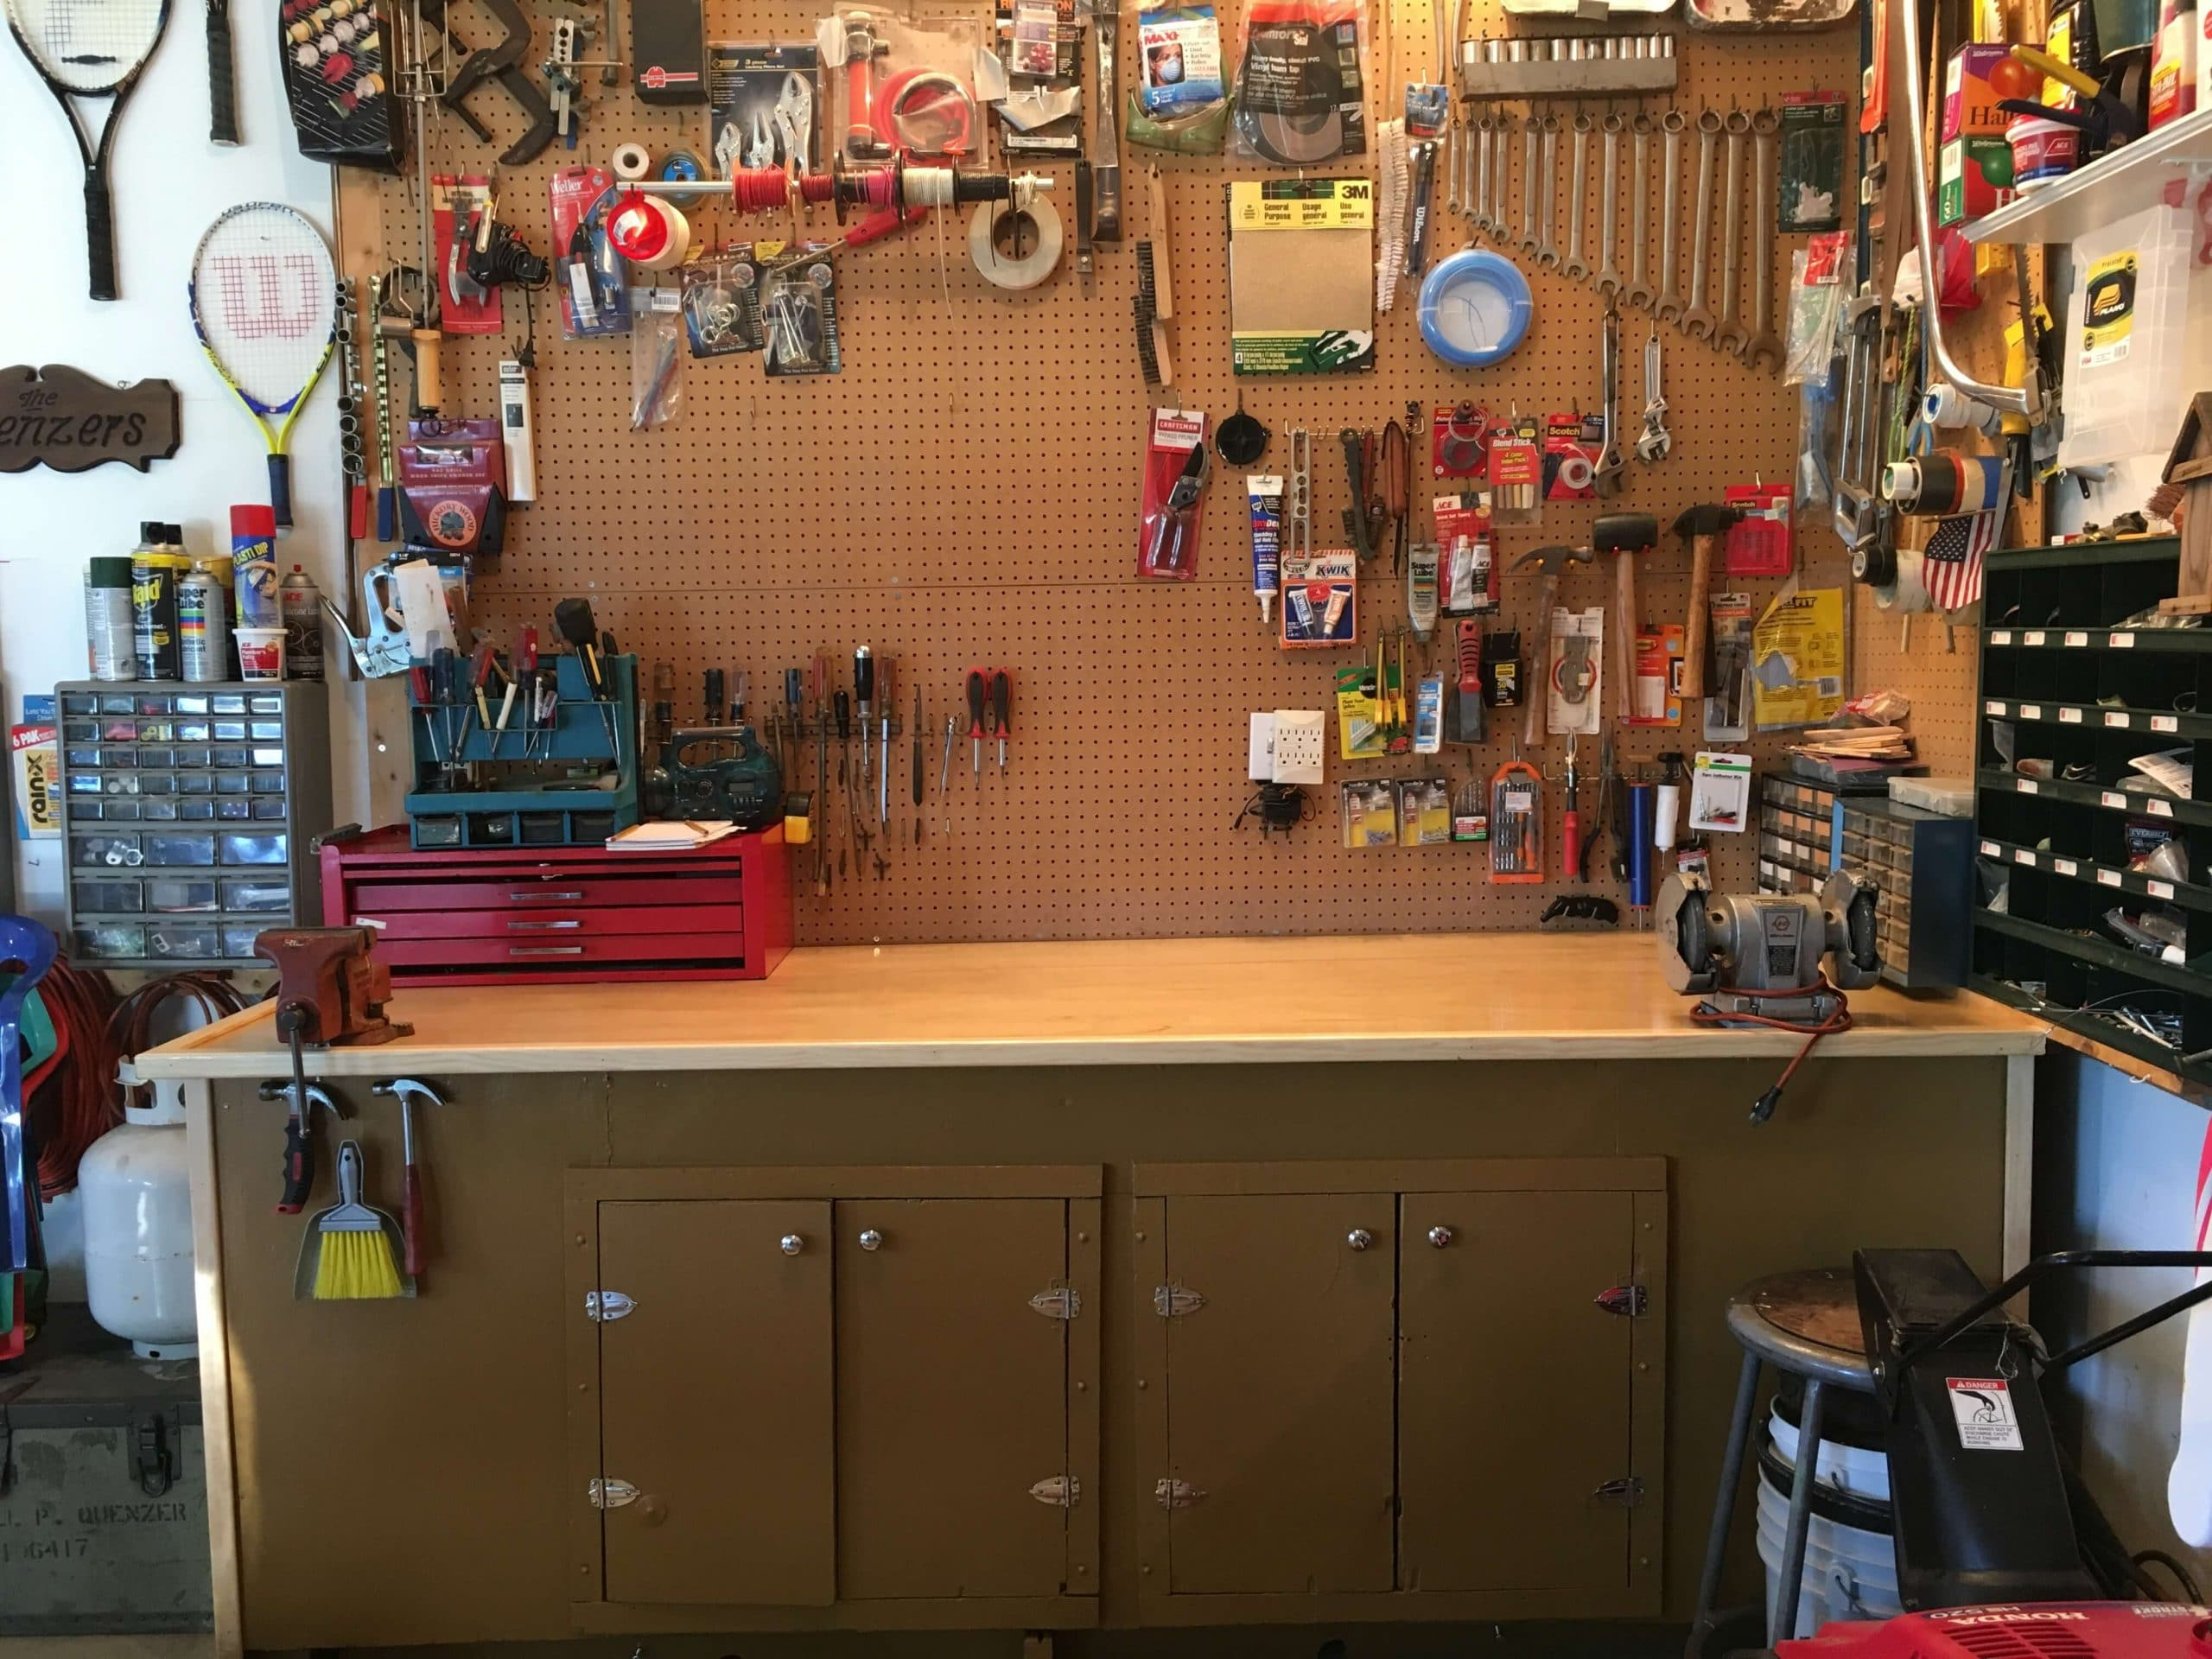 A garage workshop with a wide selection of tools